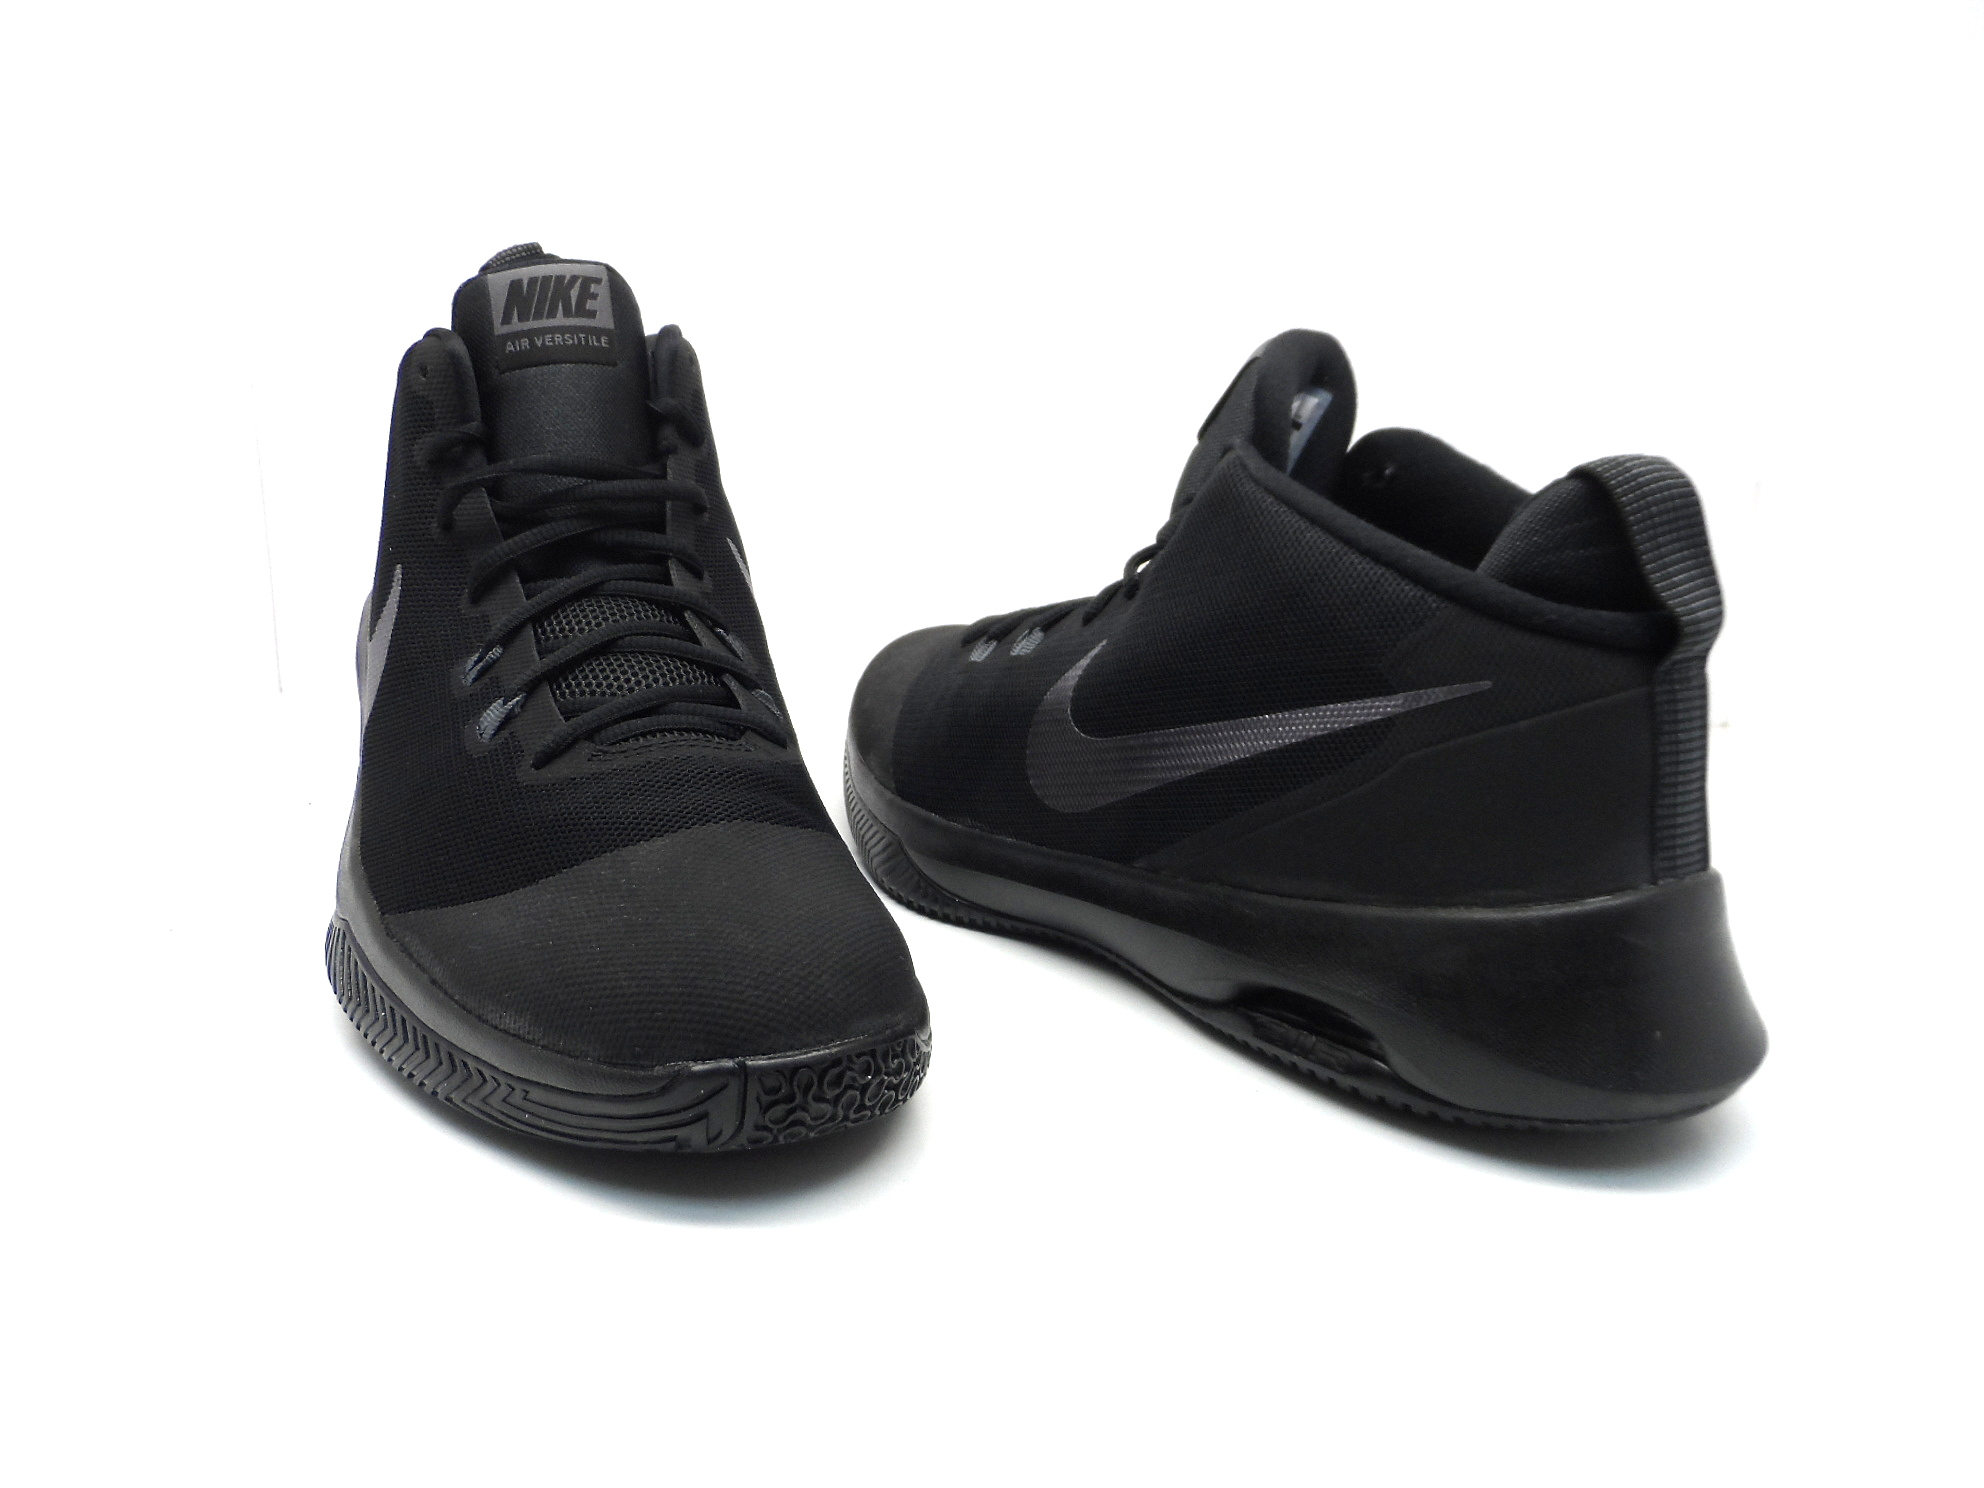 Nike Air Versitile Men S Nubuck Basketball Shoes Black